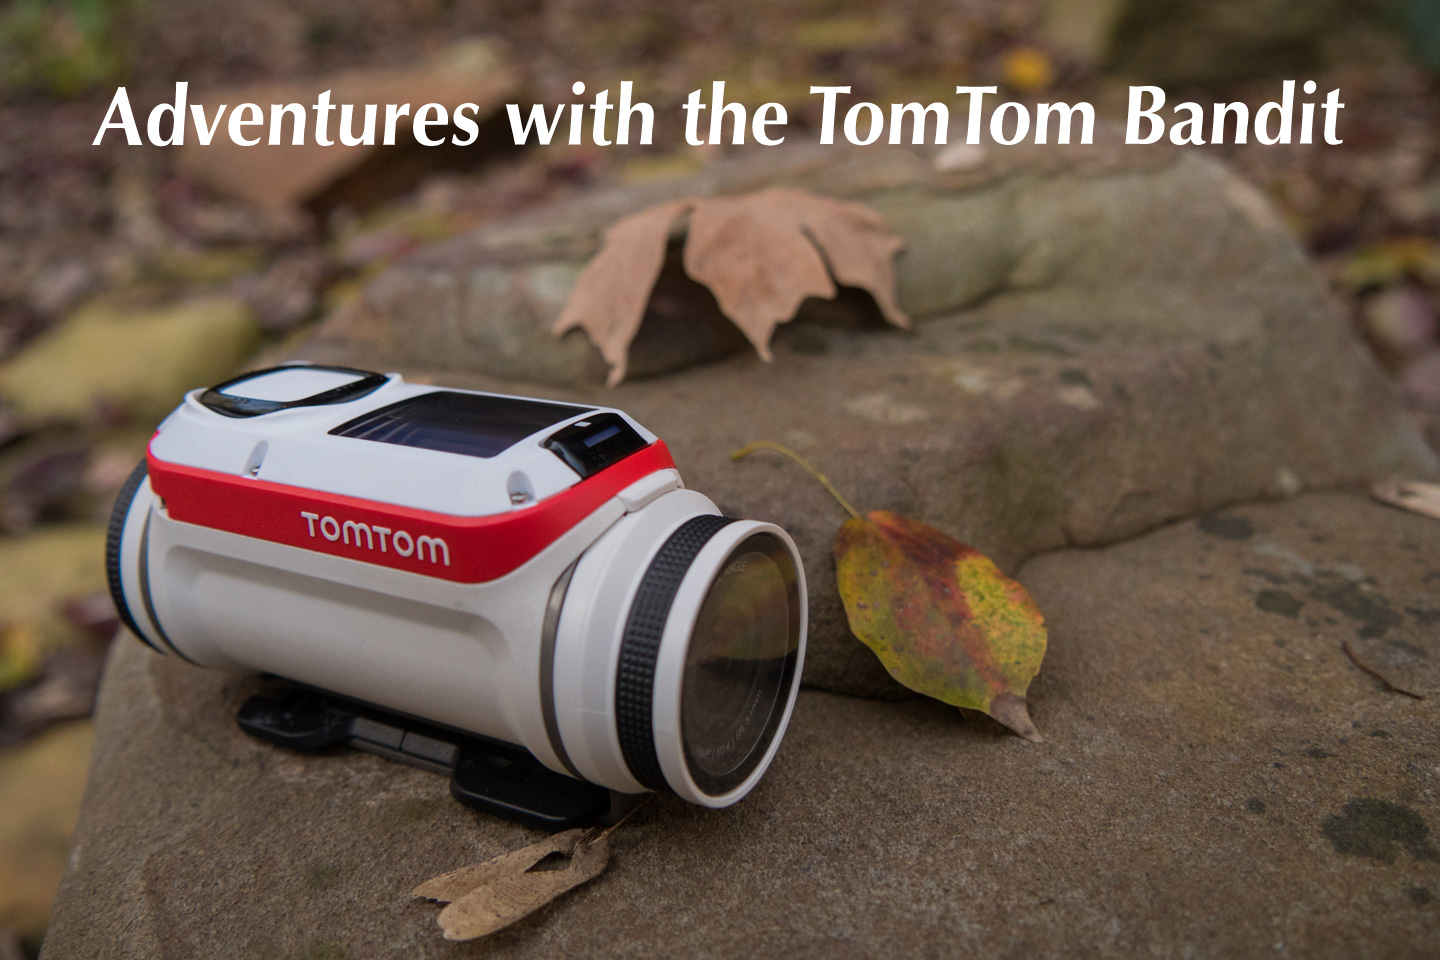 TomTom Bandit Review by Val in Real Life